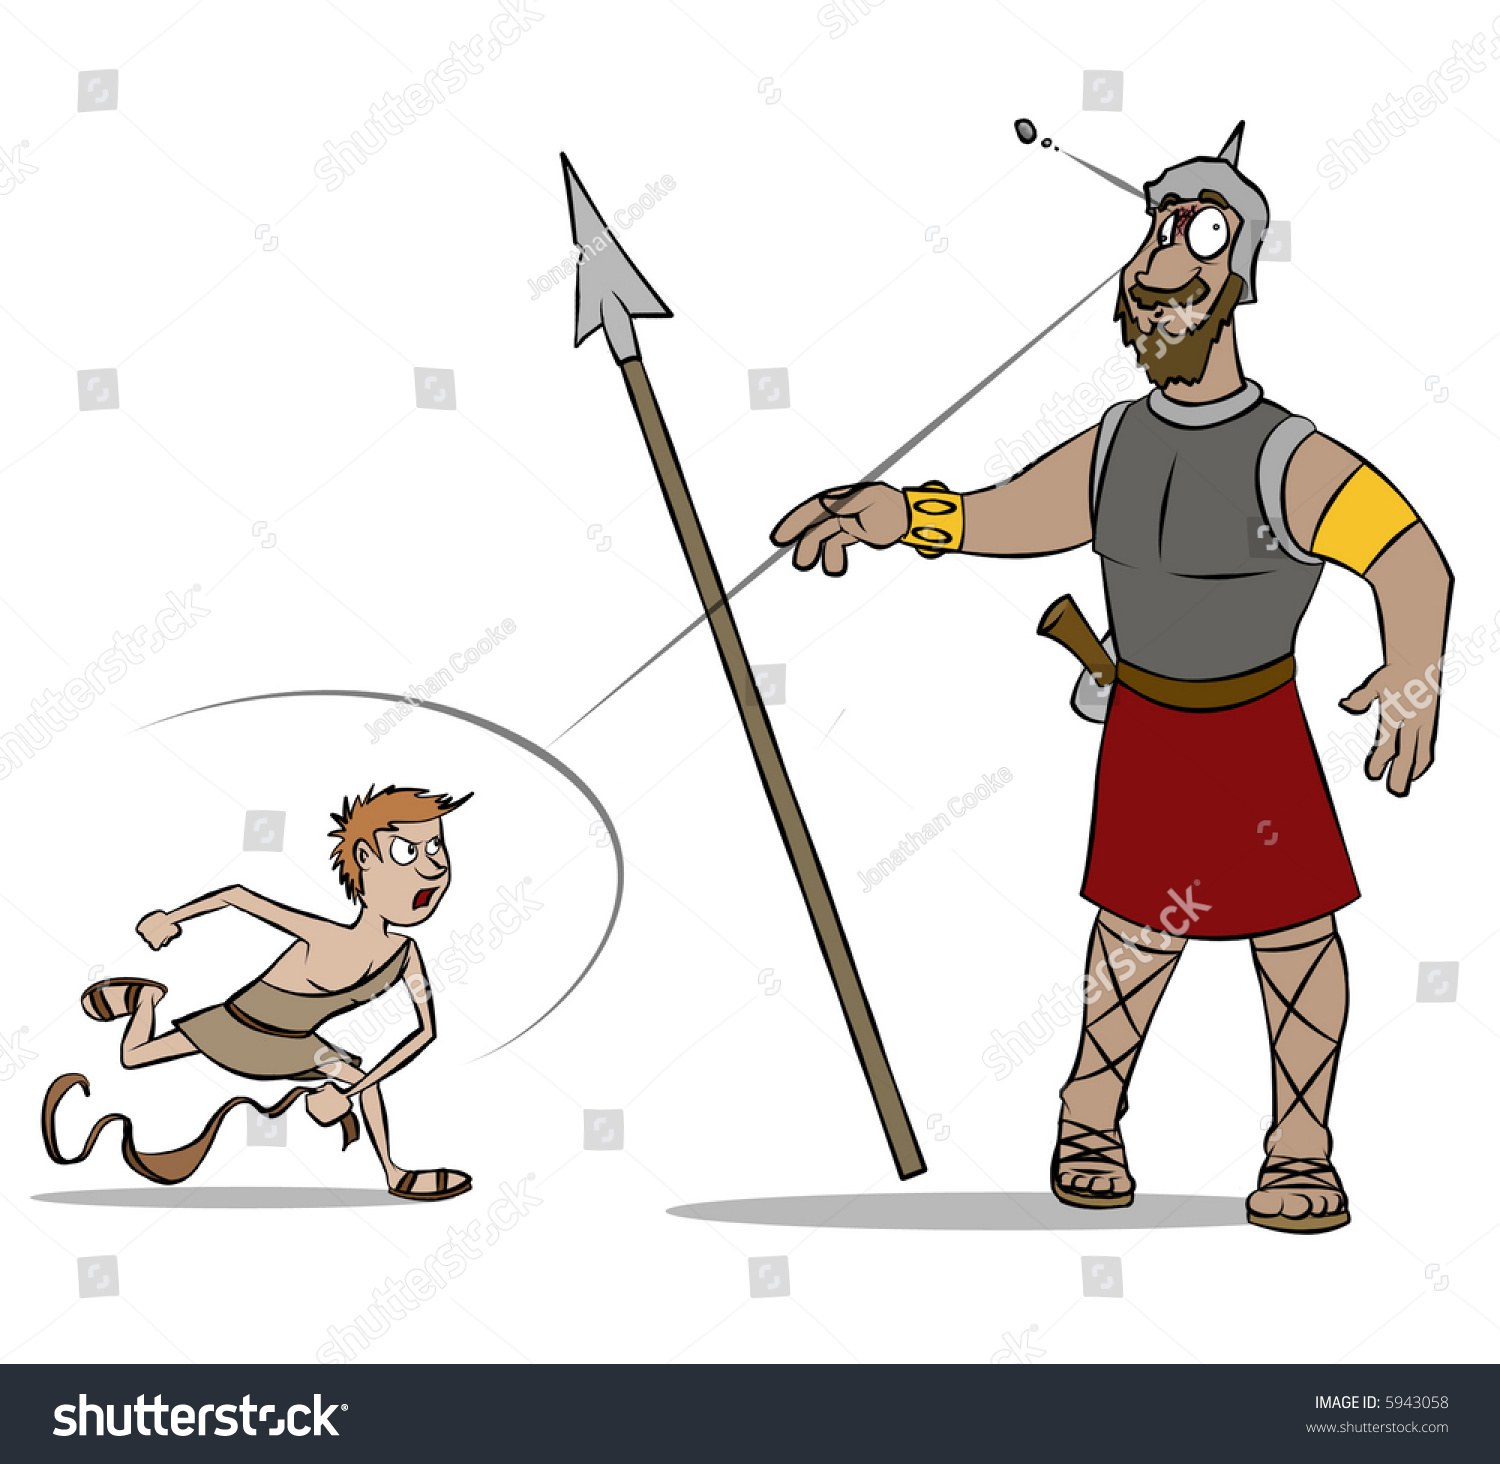 classic bible story david versus goliath stock illustration